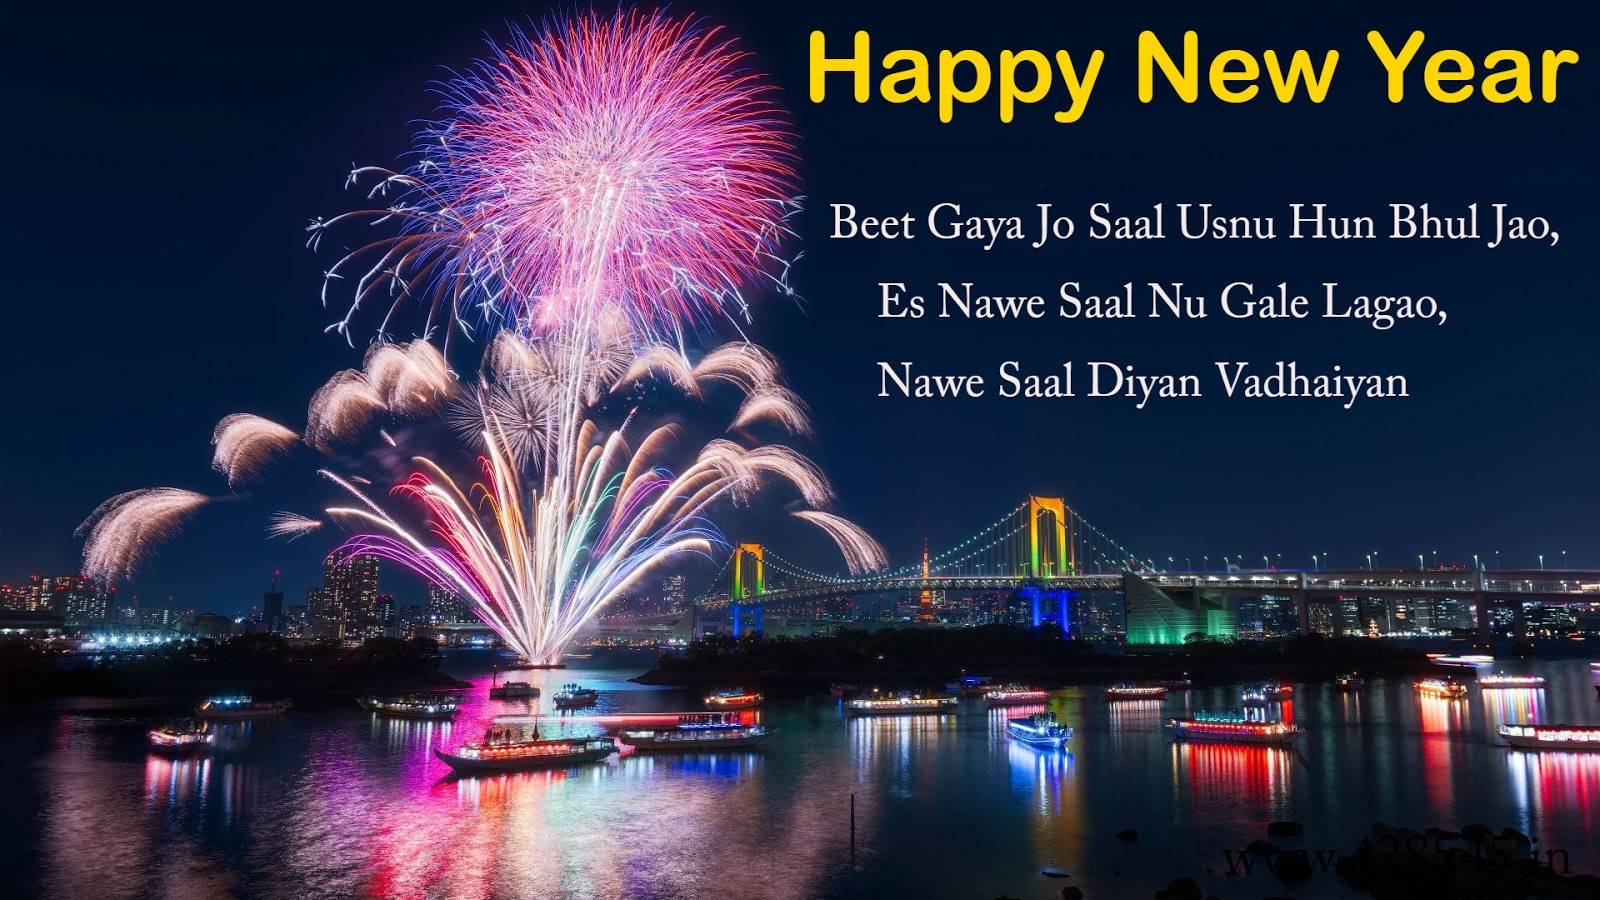 Punjabi Happy New Year Messages Images With Nee Year Text 2020 Download